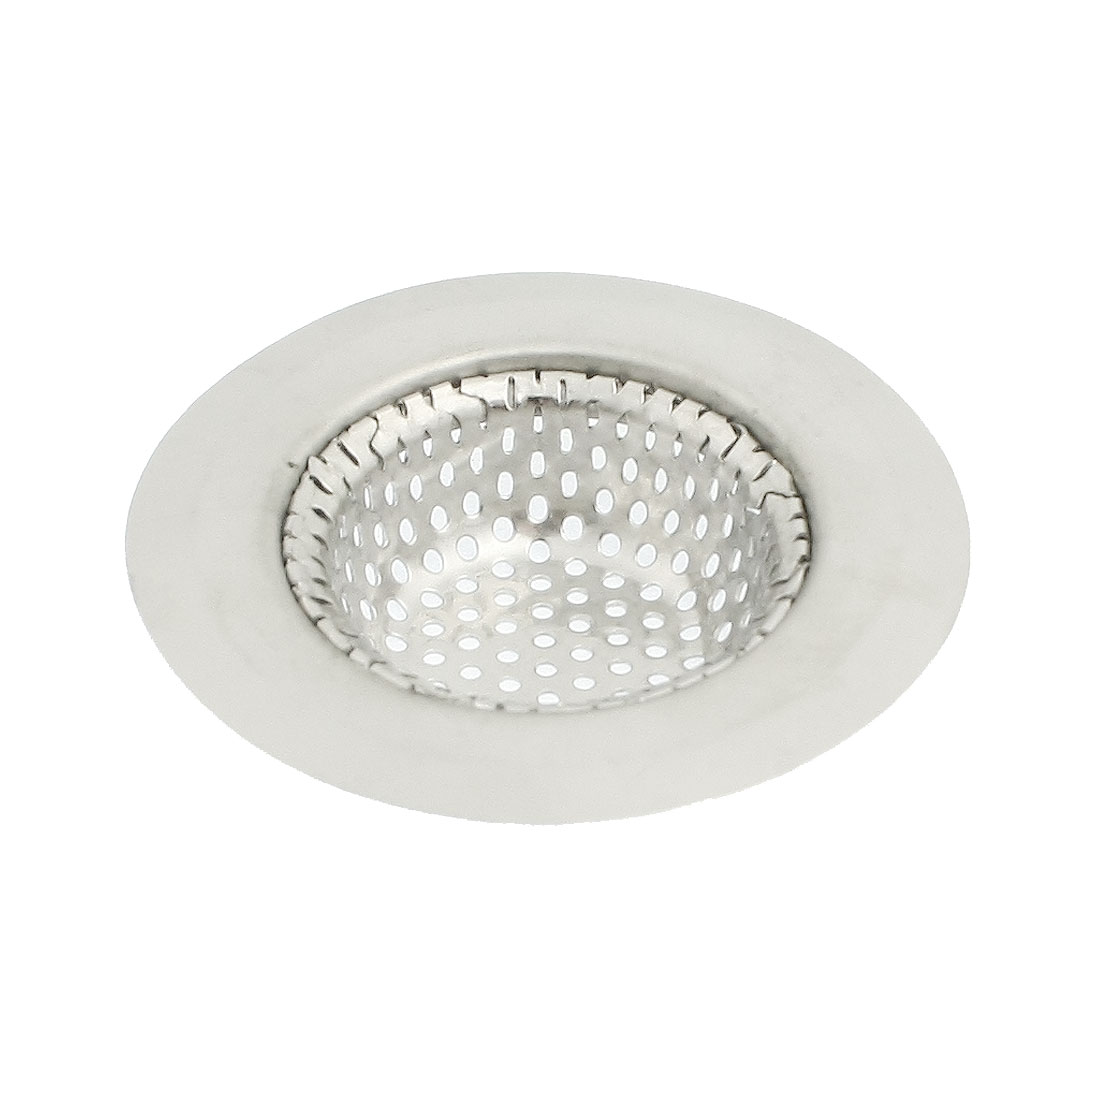 Bathroom Floor 70mm Top Dia. Silver Tone Sink Strainer Stopper